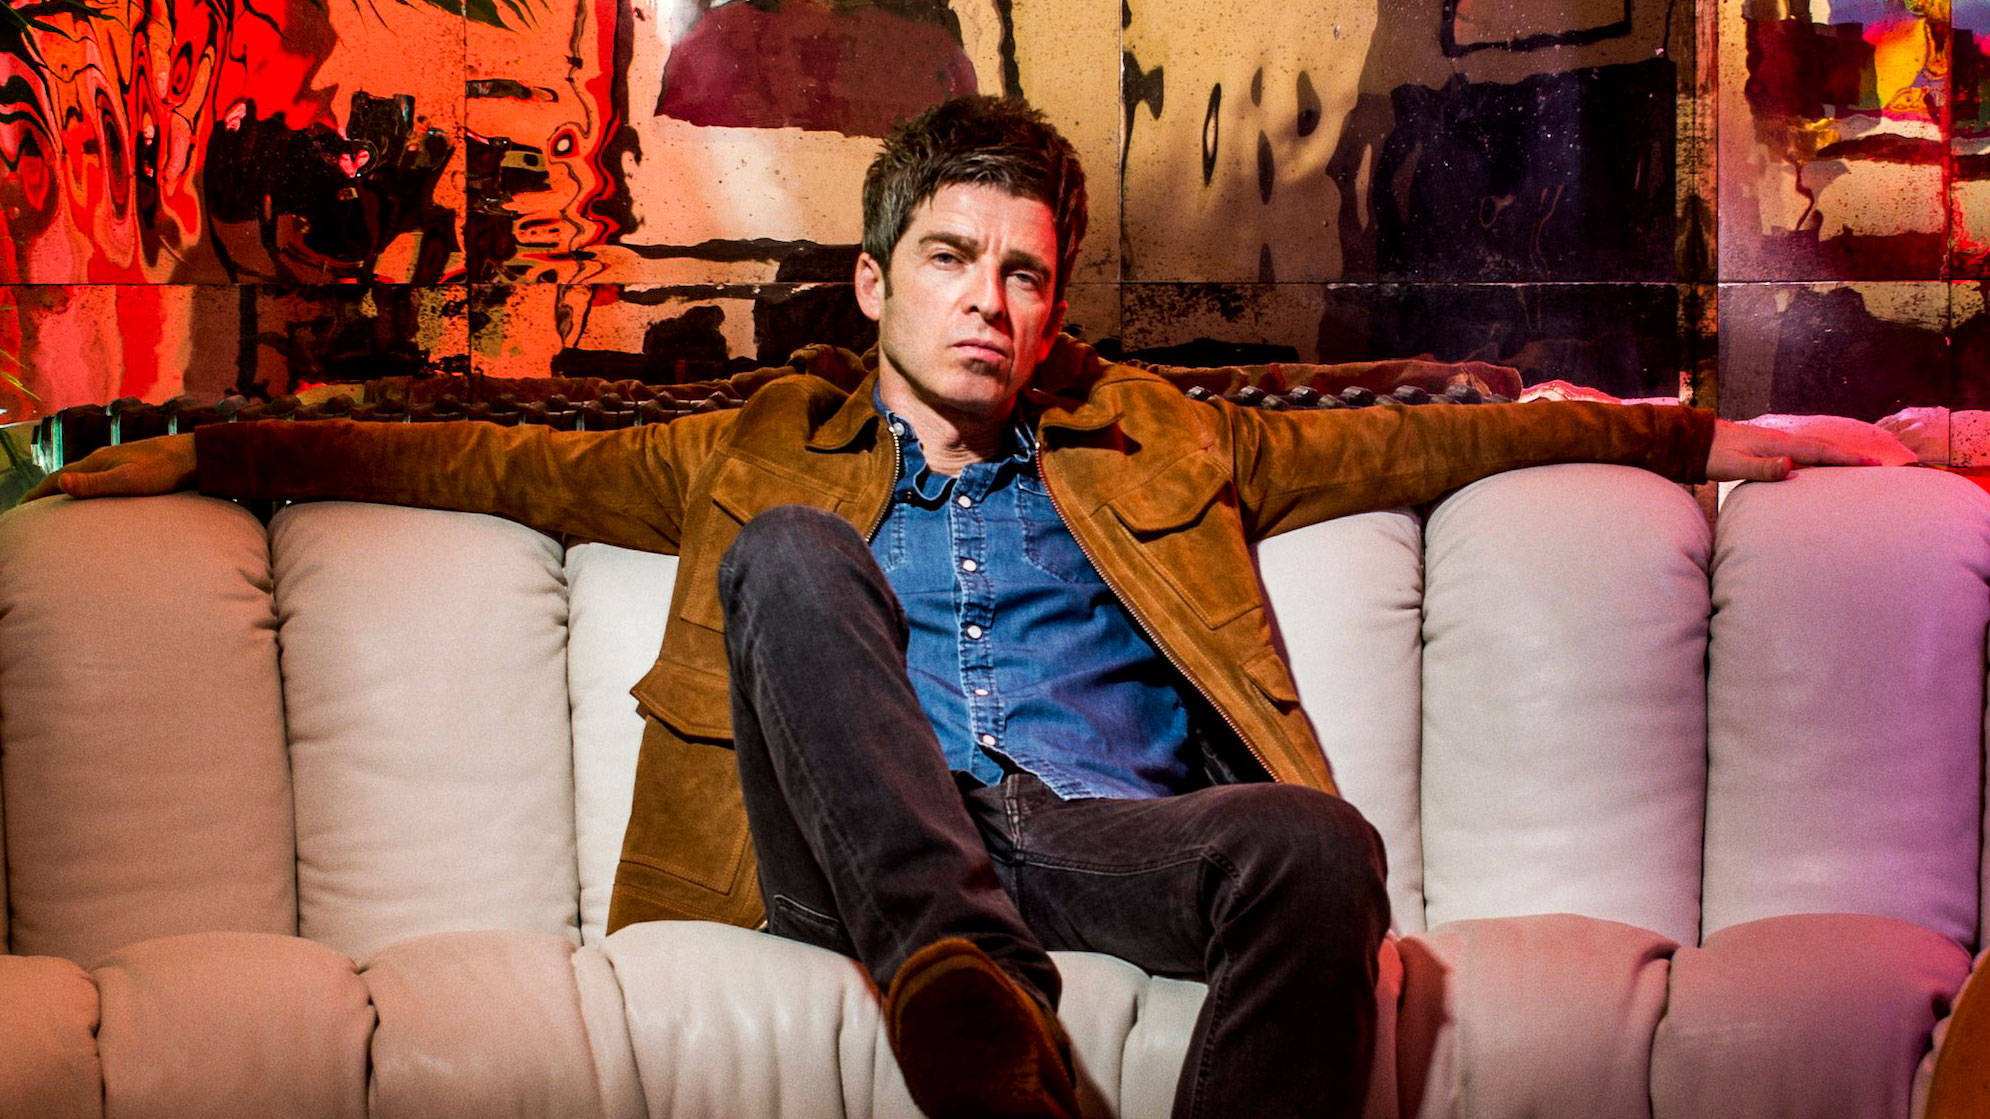 Noel Gallagher: I wouldn't have left Oasis if I worried what fans want